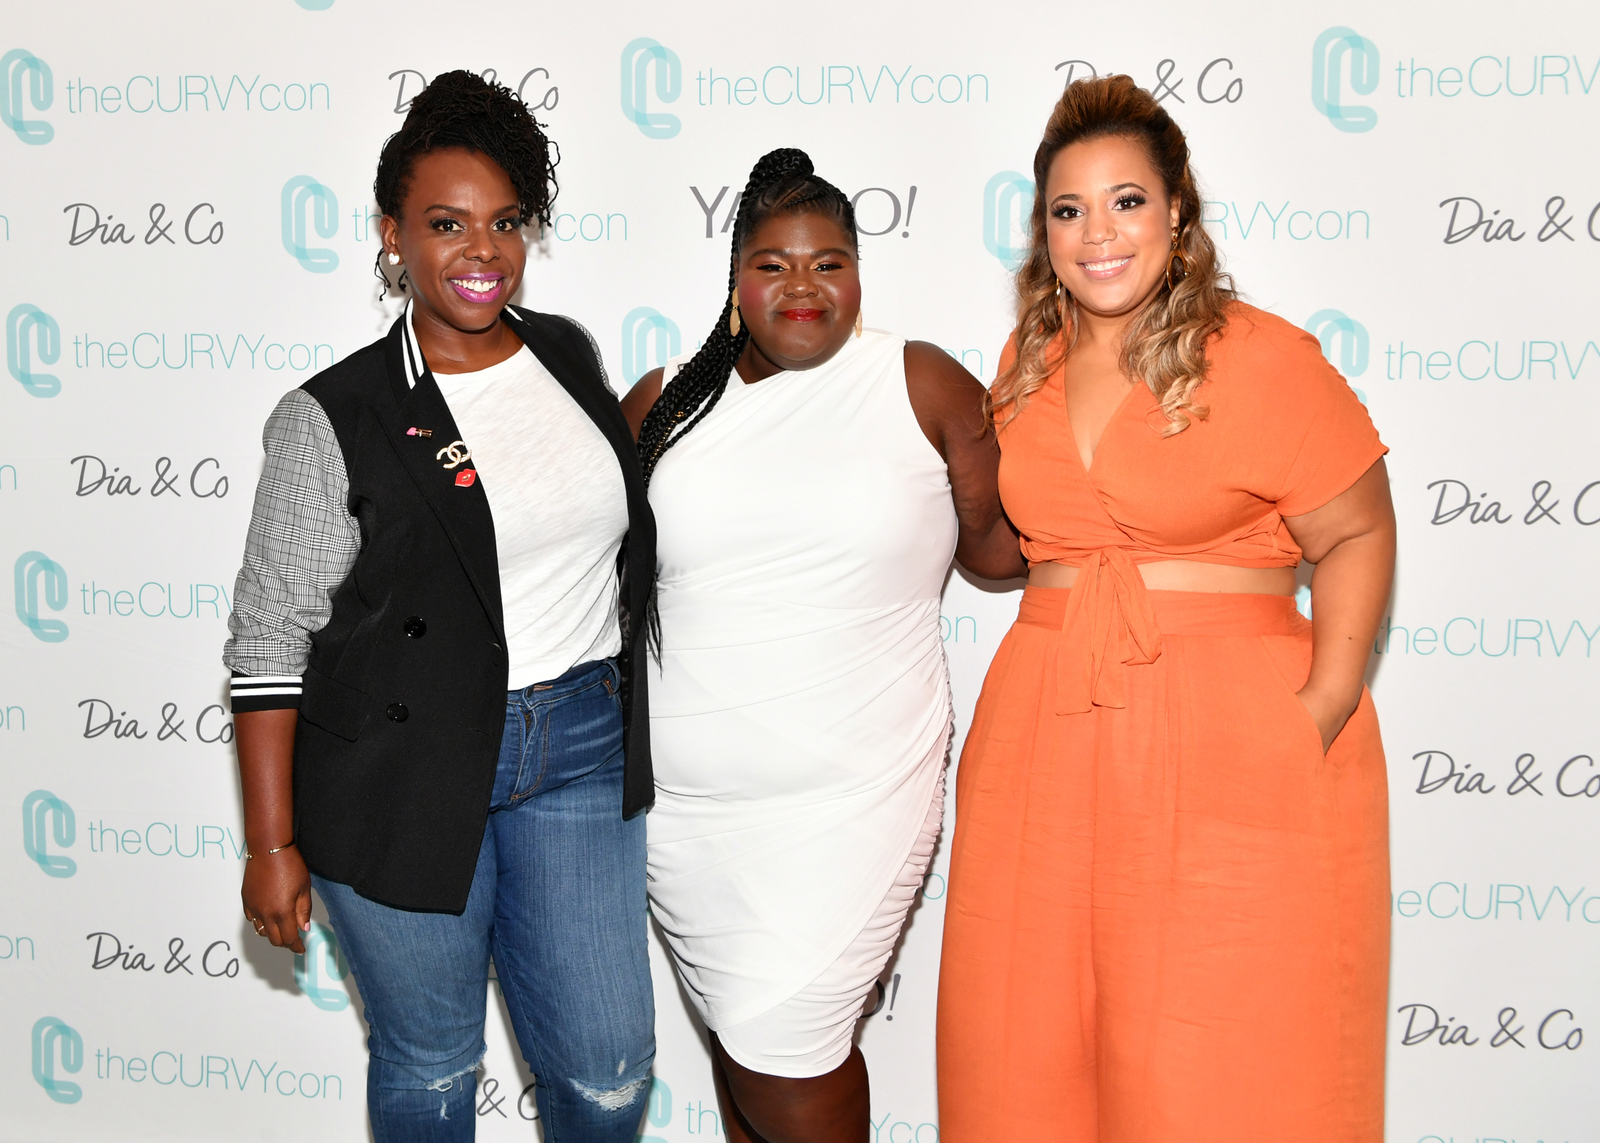 (l-r) theCURVYcon co-founder Cece Olisa, Gabourey Sidibe, and theCURVYcon co-founder Chastity Garner Valentine attend theCURVYcon Powered By Dia&Co on September 8, 2018 in New York City.